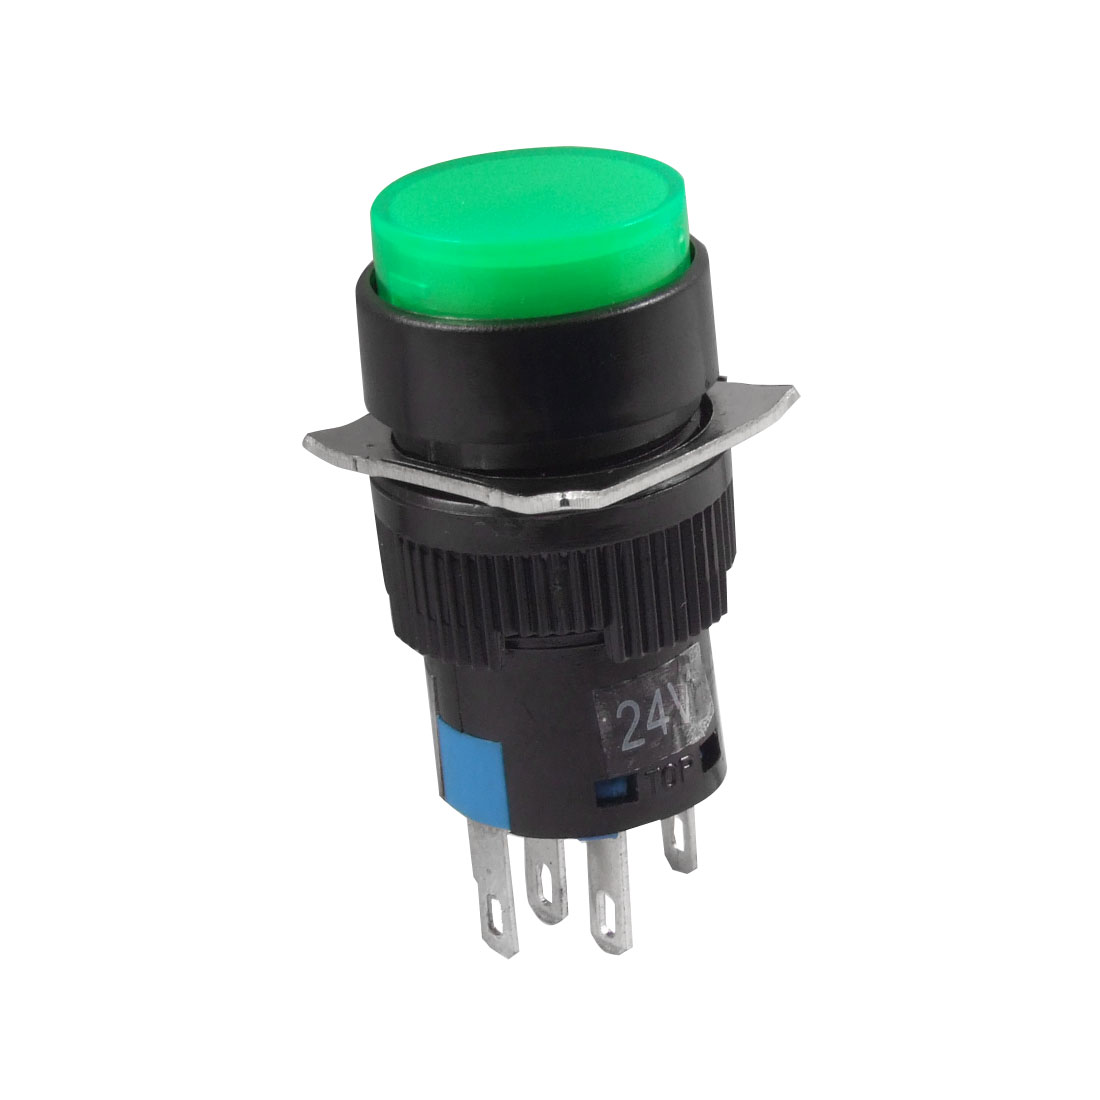 DC 24V Green Neon Light DC 30V 5A AC 3A/250V Momentary Push Button Switch